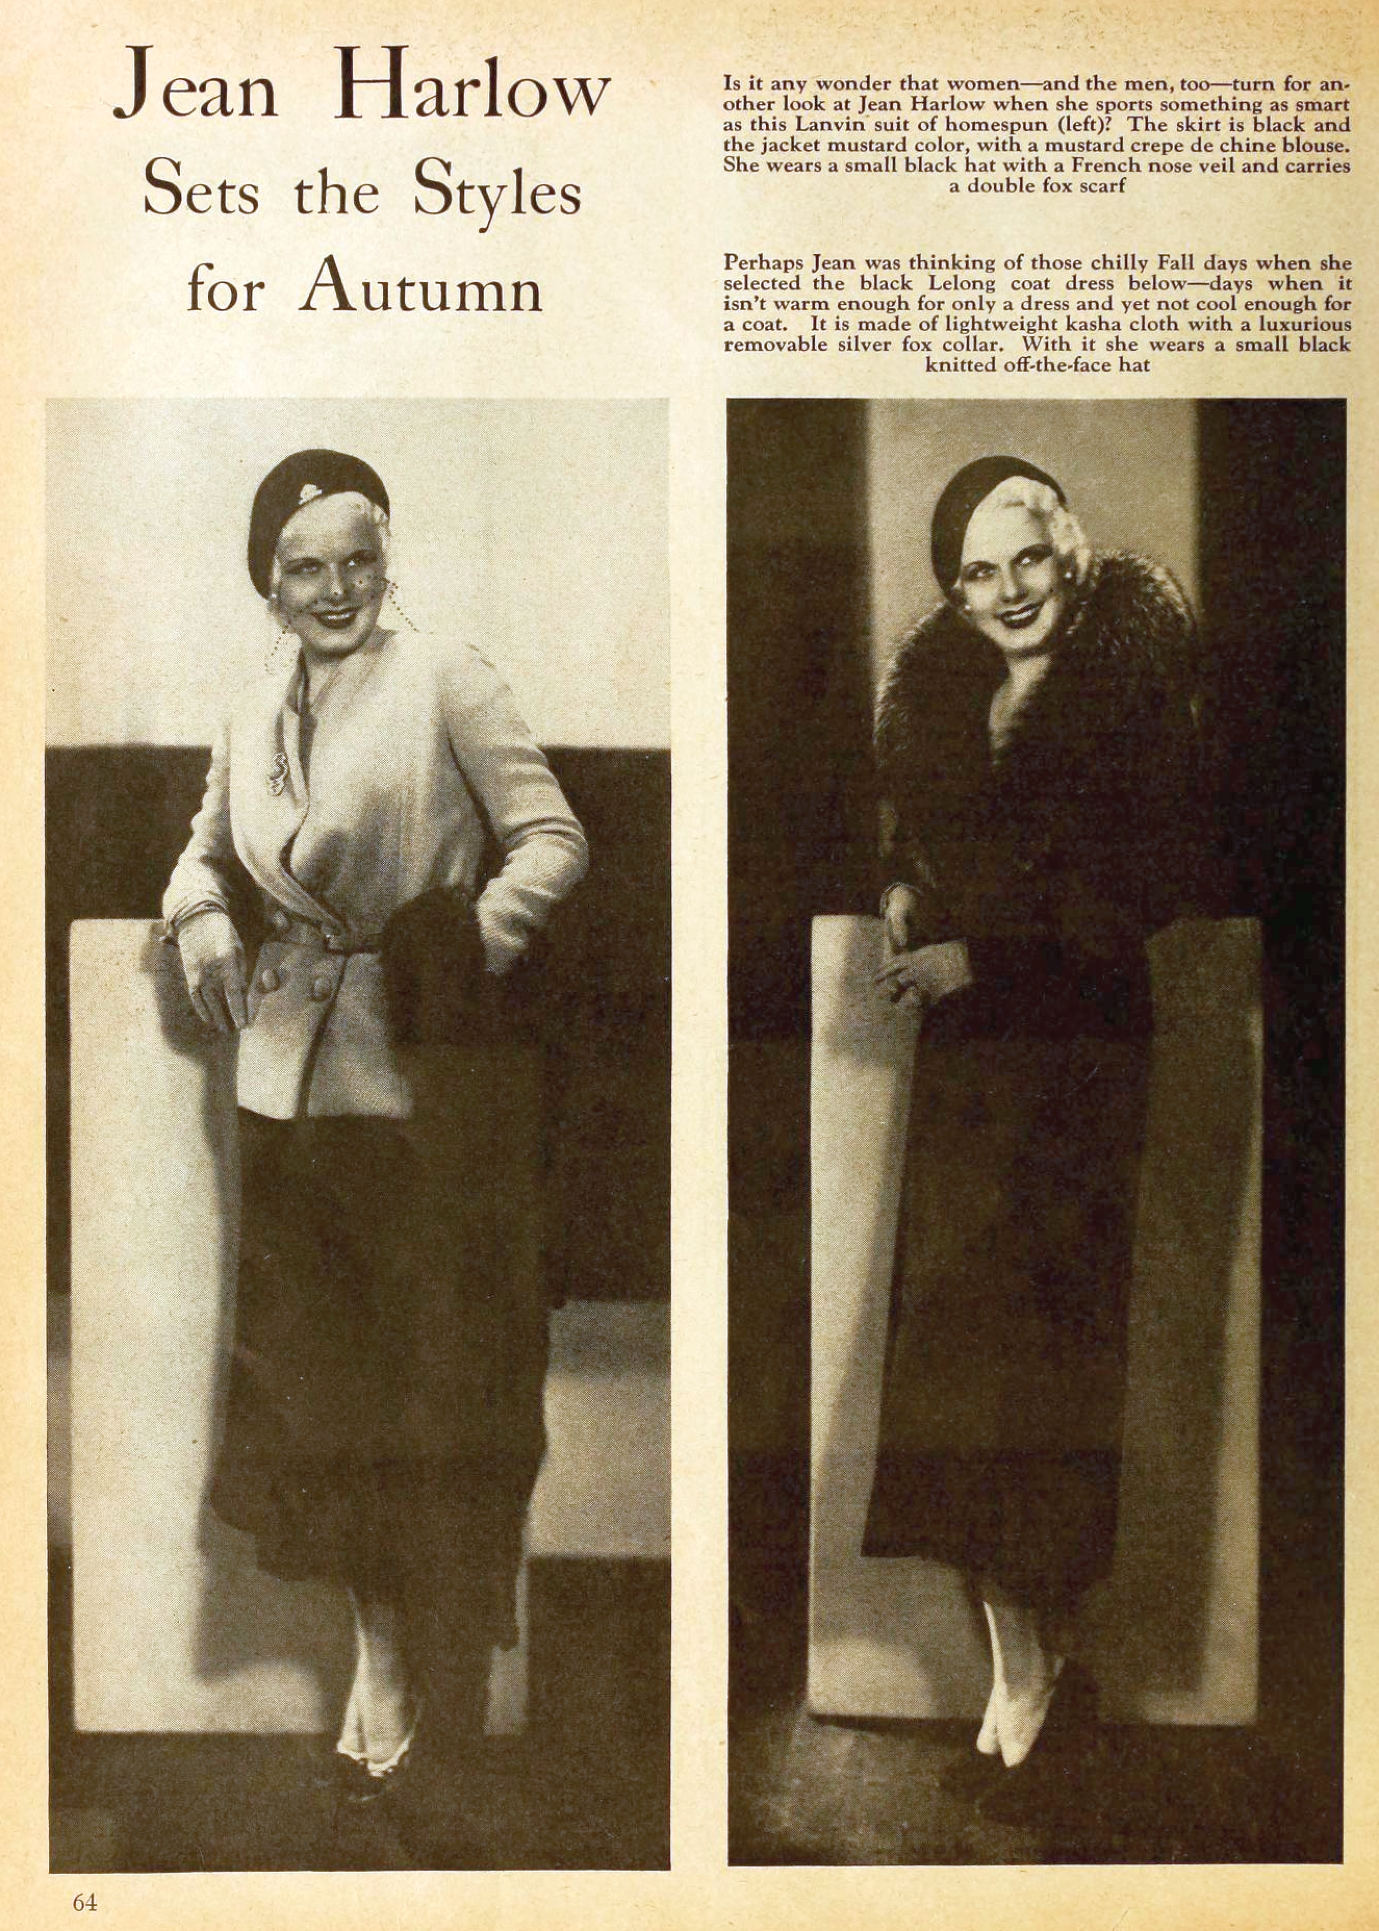 jean harlow motion picture october 1931 fall fashions 00a